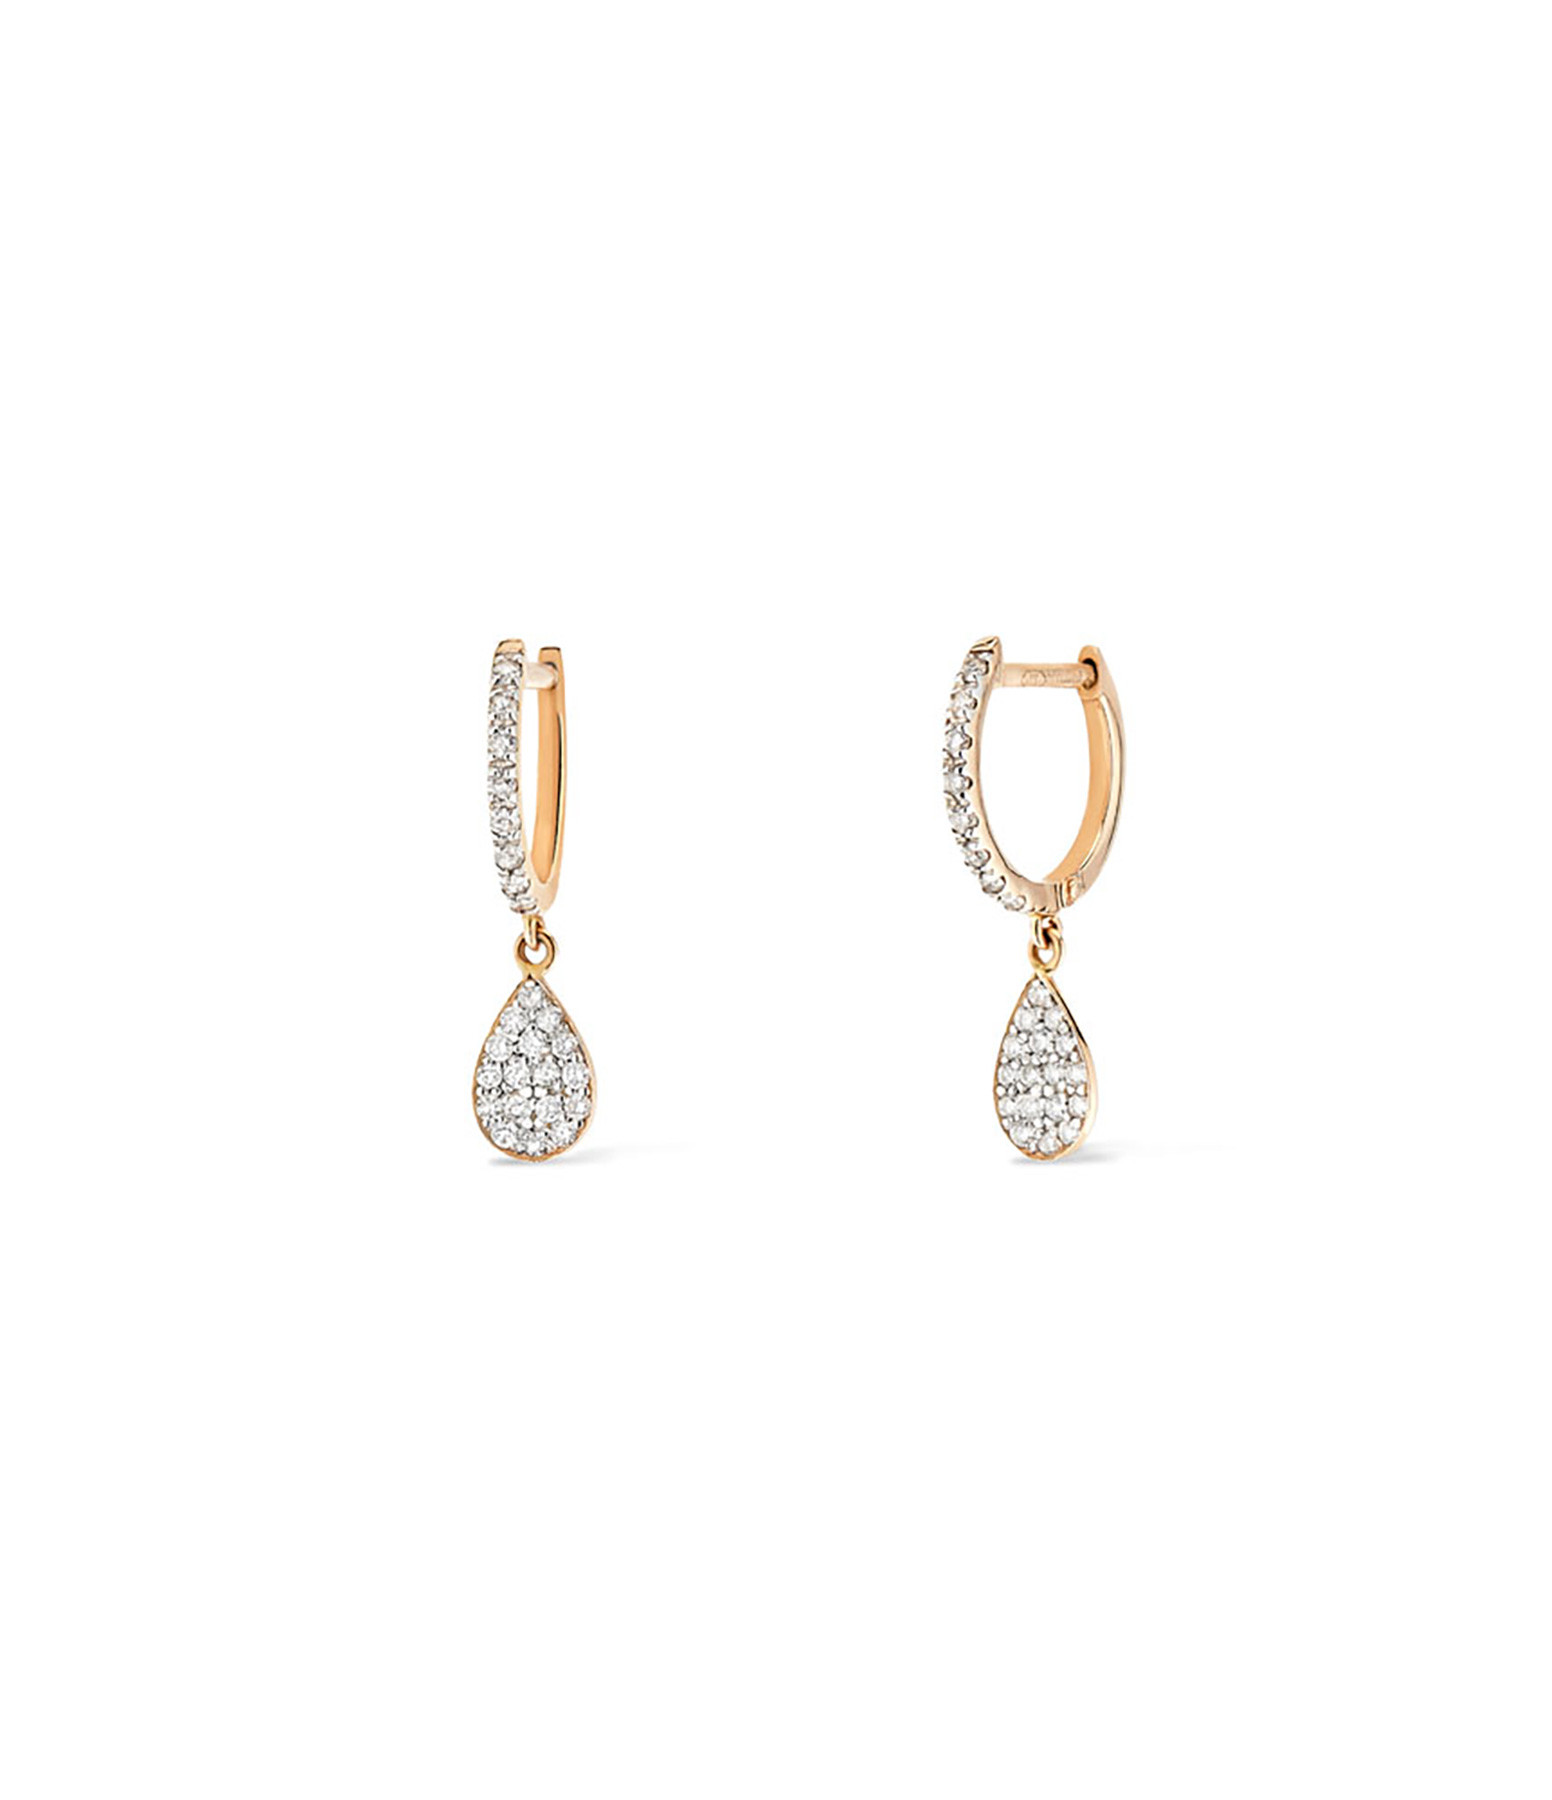 GINETTE NY - Boucles d'oreilles Bliss Diamants Or Rose